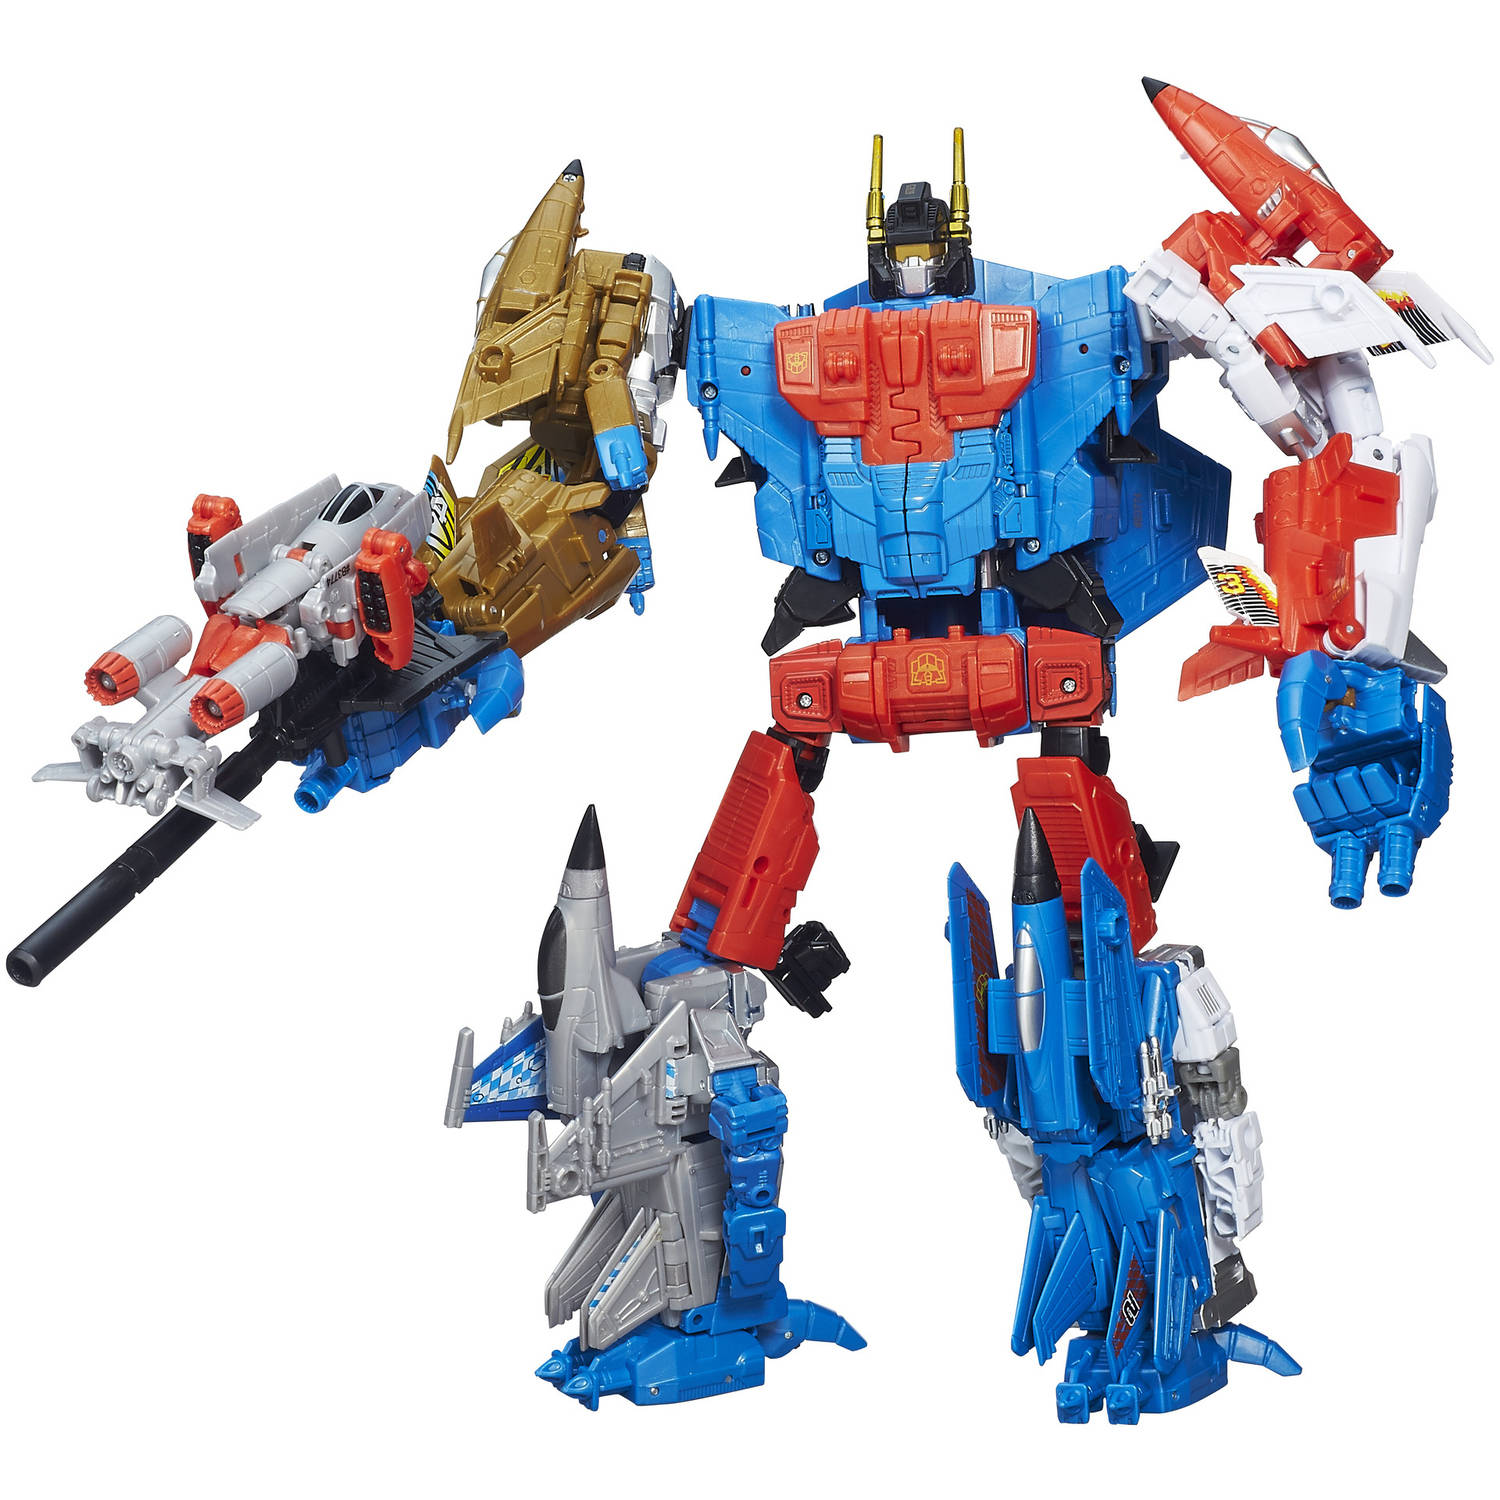 Transformers Generations Combiner Wars Superion Collection Pack Transformer